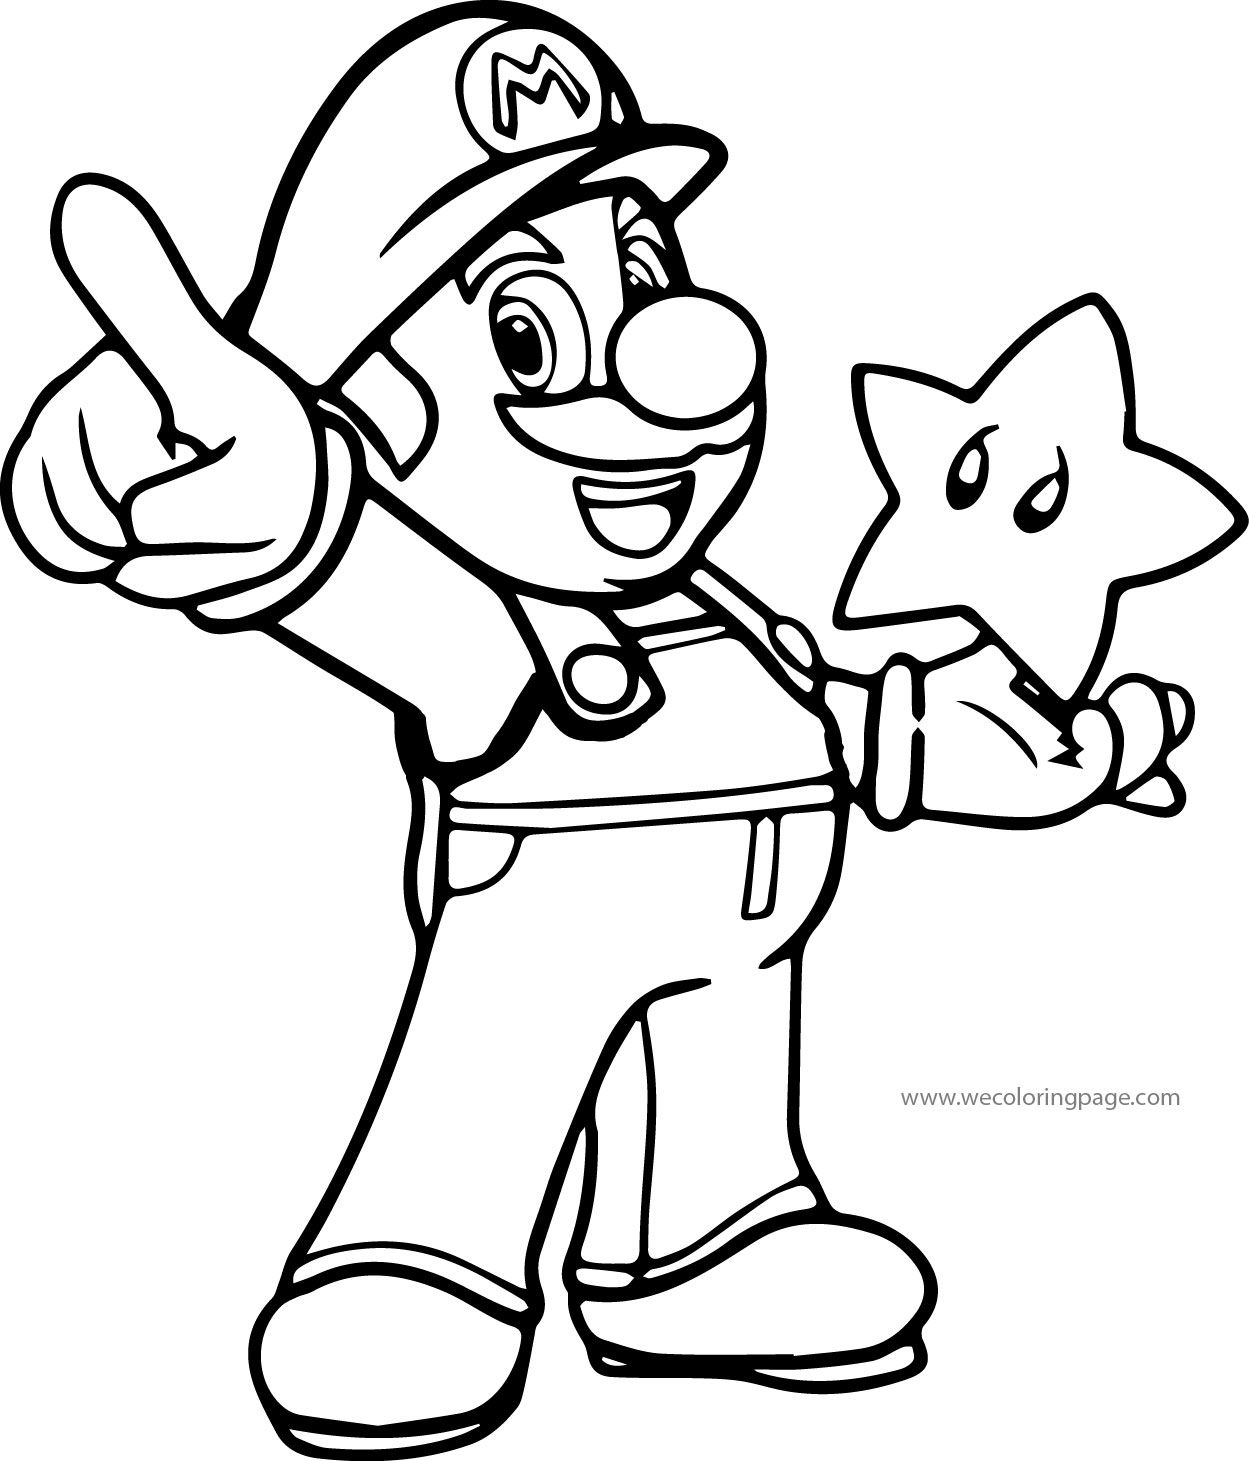 Awesome Super Mario Coloring Page Wecoloringpage Pinterest